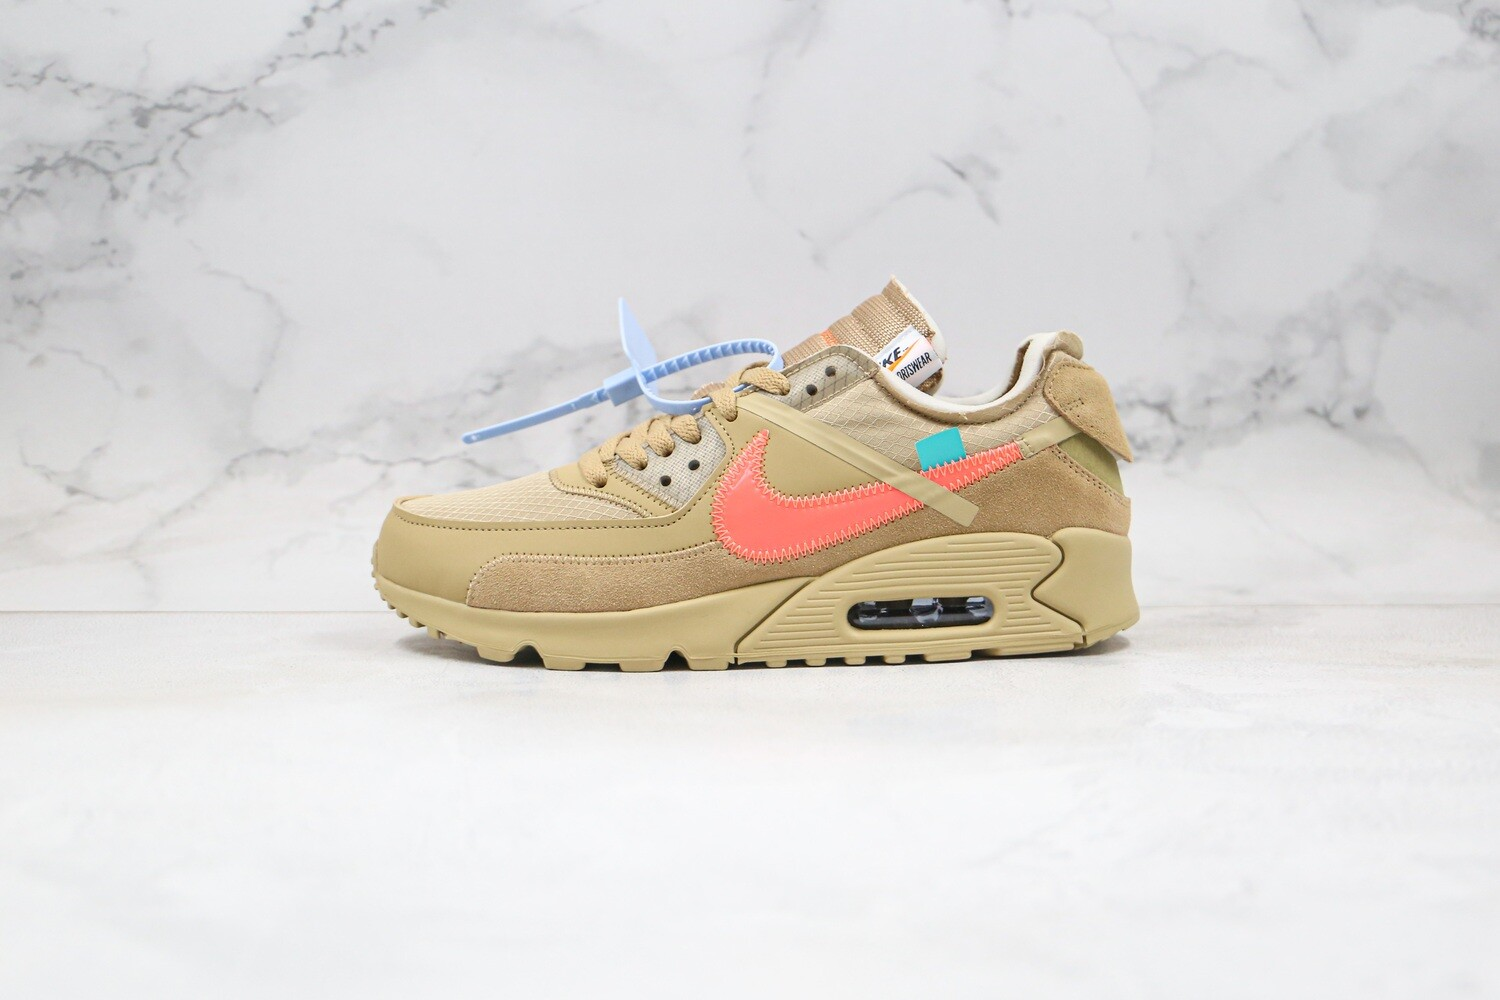 Men's Off -White x Nike Air Max 90 OW Yellow Basketball Shoes Casual Life sneakers